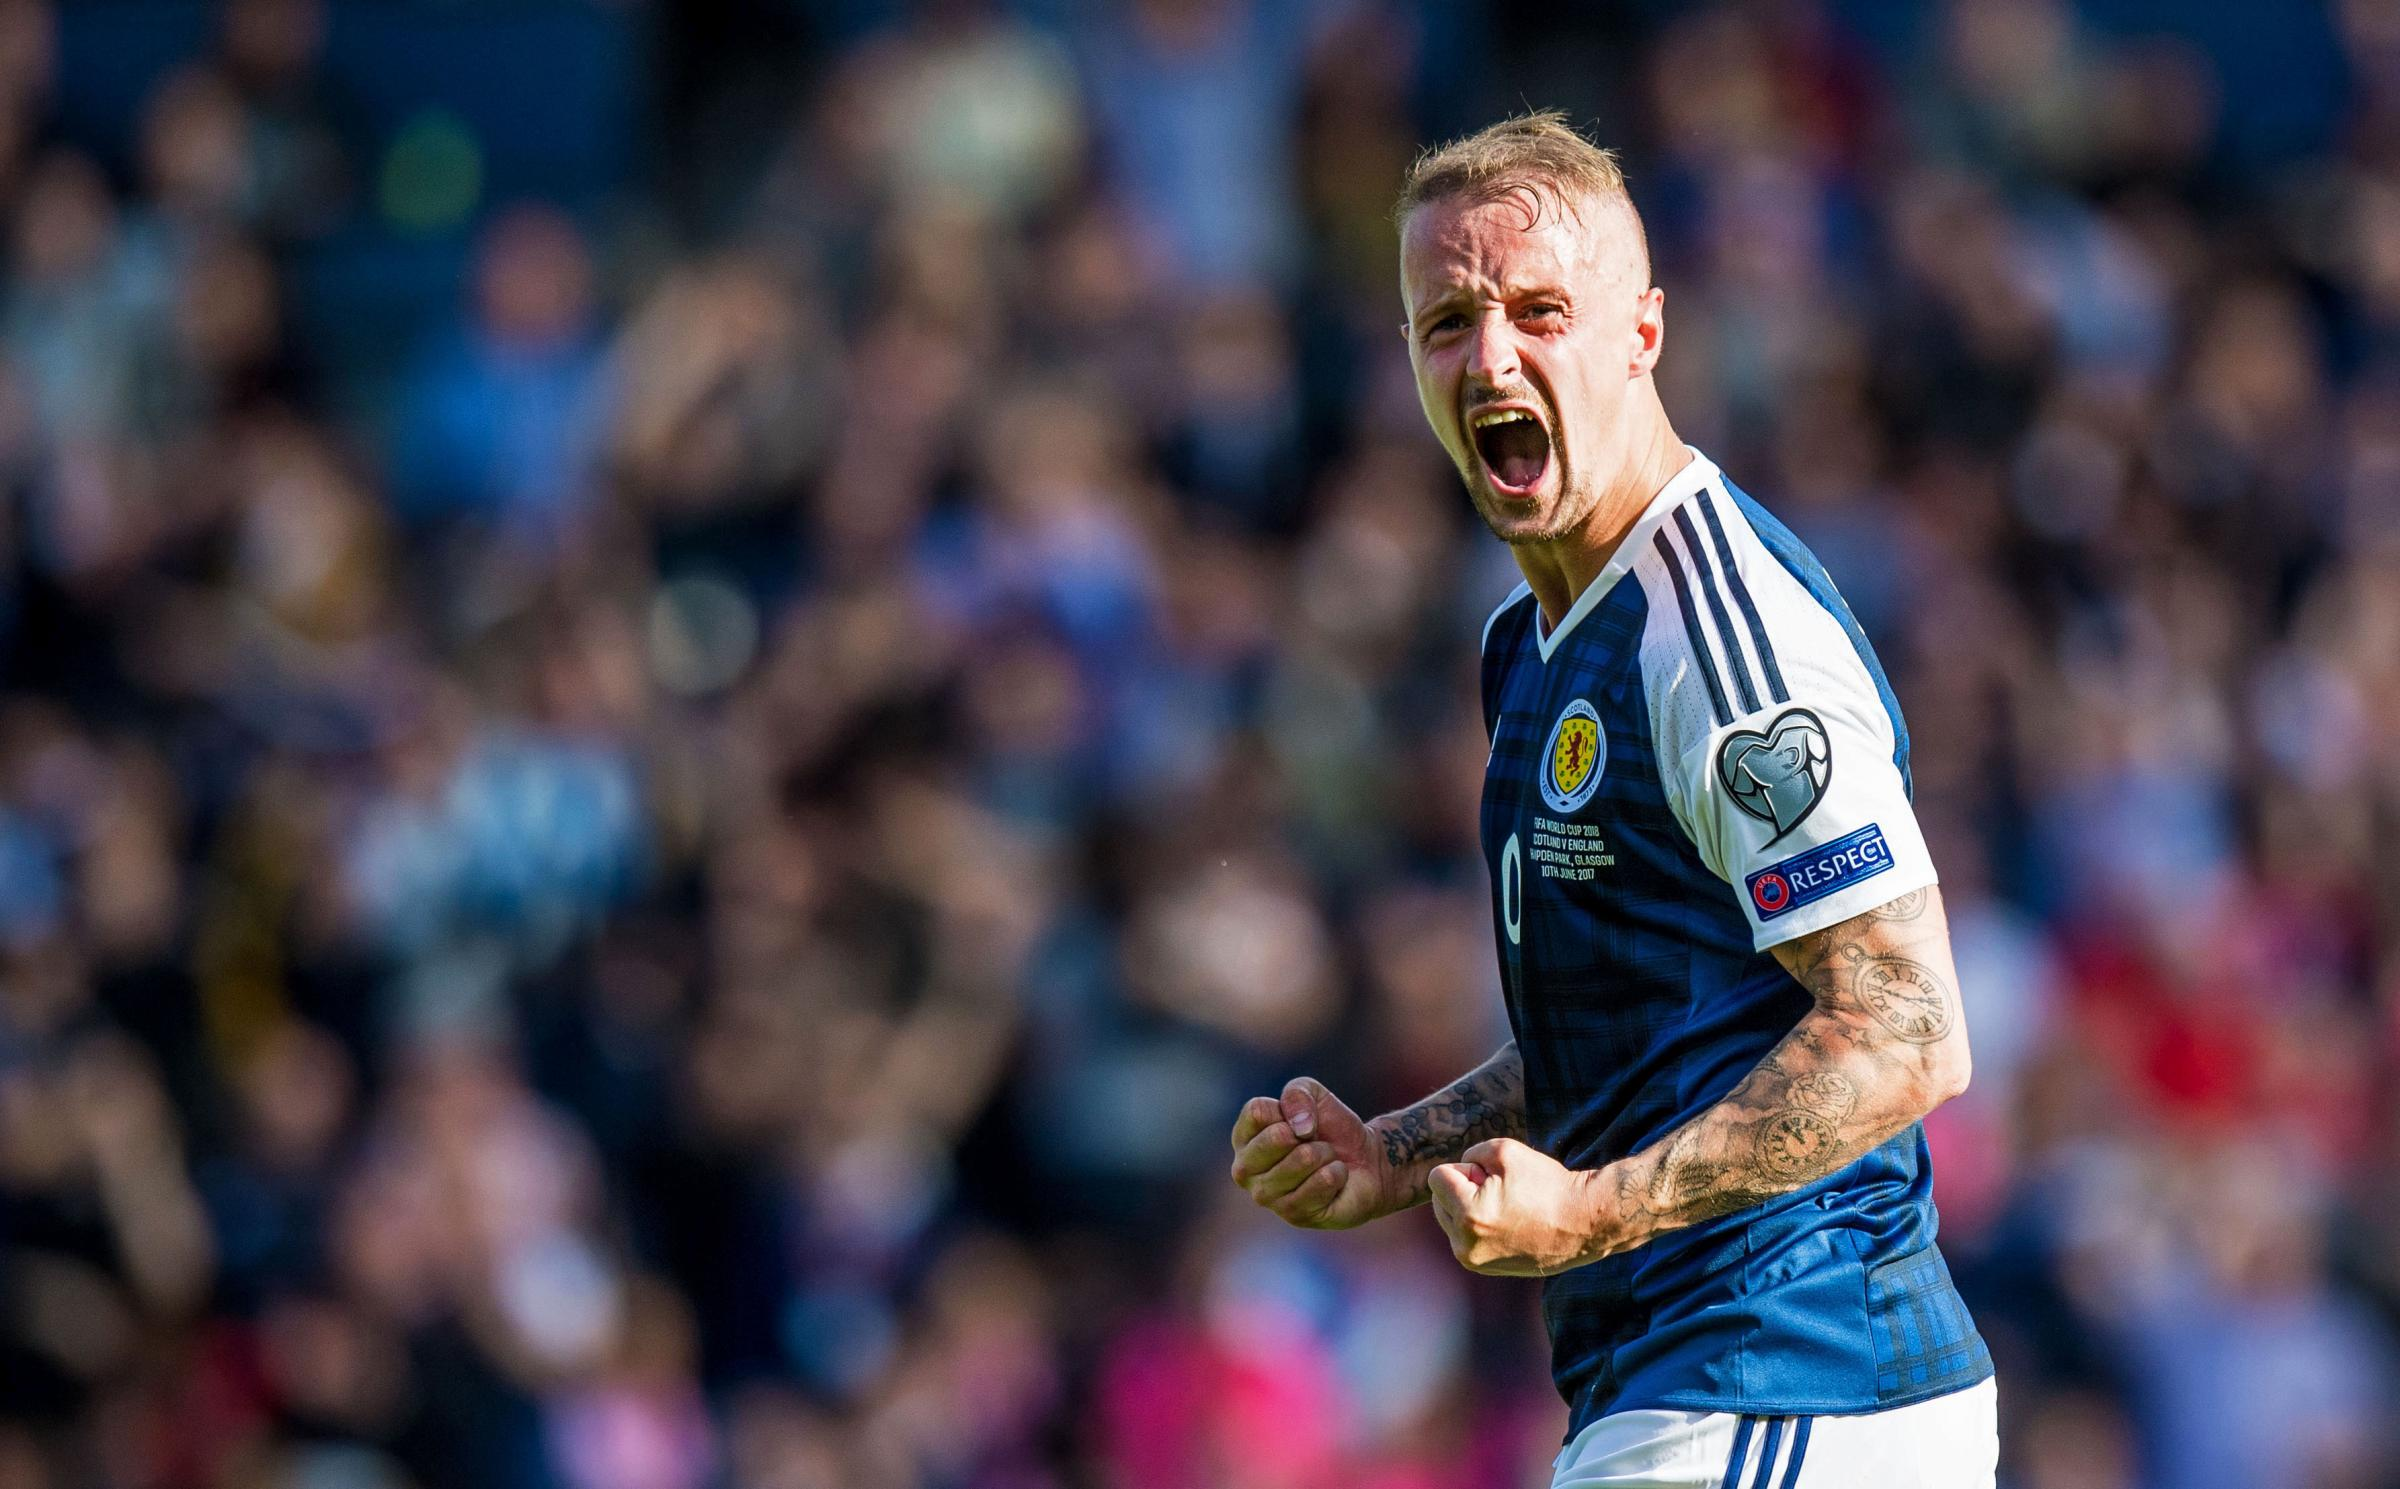 10/03/17 WORLD CUP QUALIFIER . SCOTLAND v ENGLAND. HAMPDEN PARK - GLASGOW. Scotland's Leigh Griffiths celebrates his first goal..